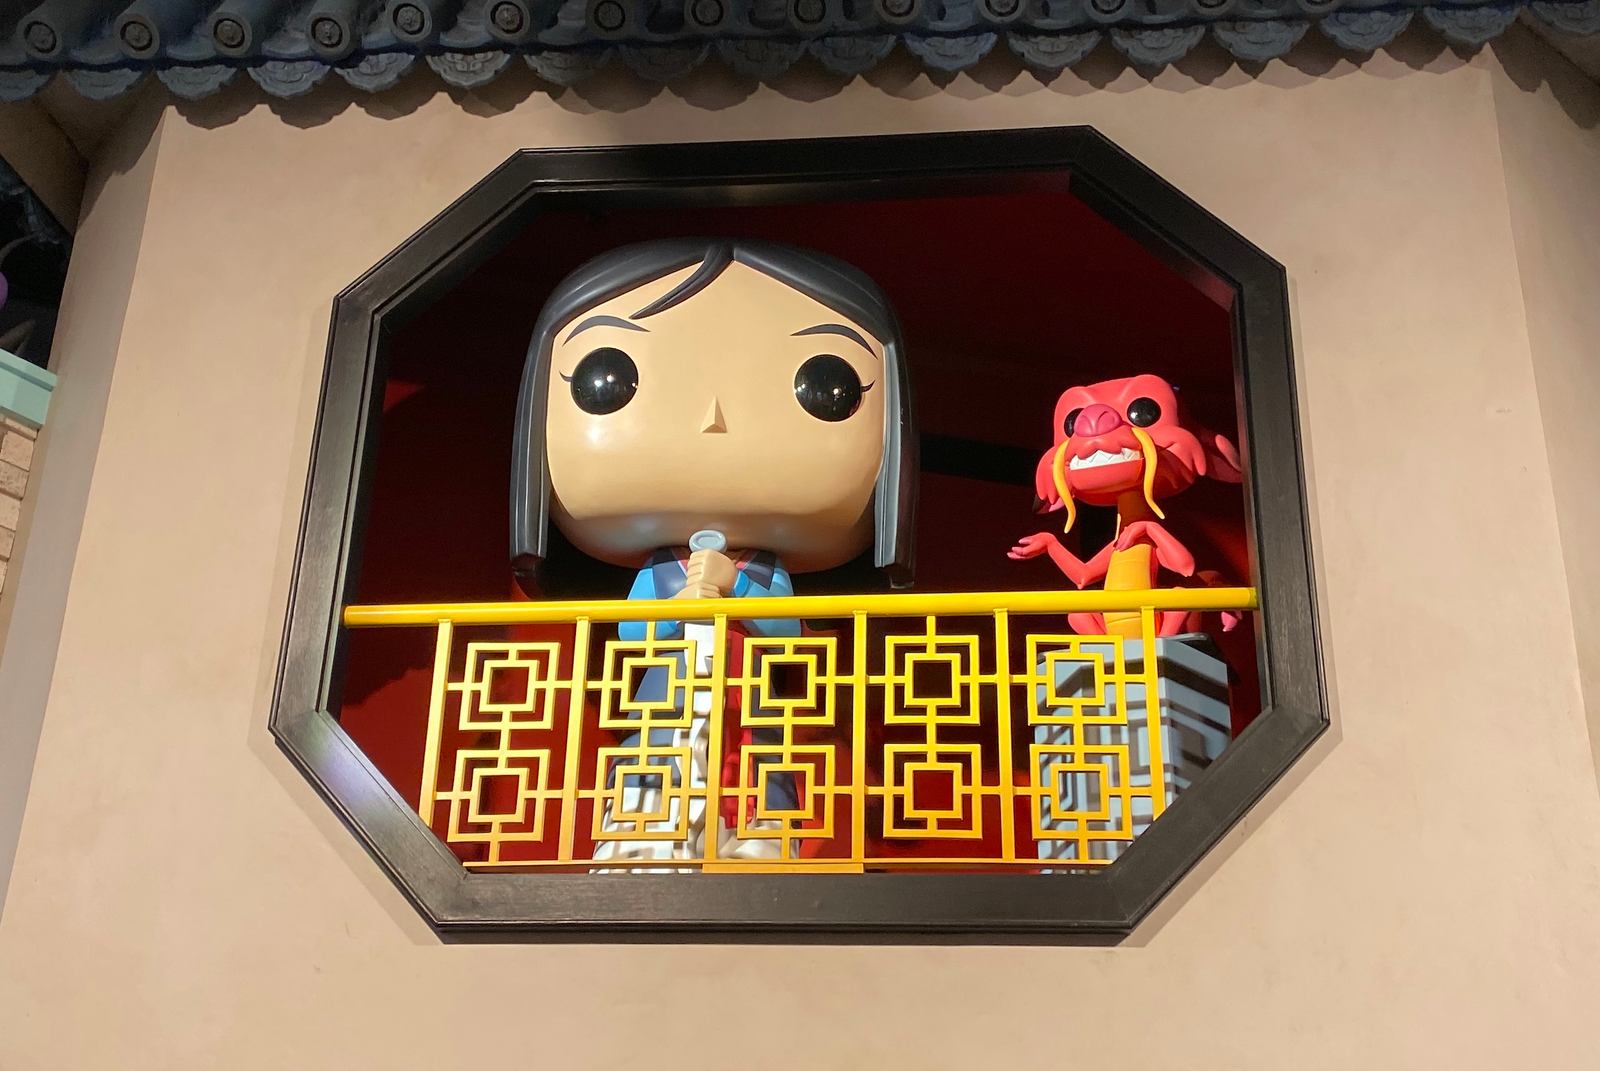 Mulan and Mushu, waiting for the live-action movie.